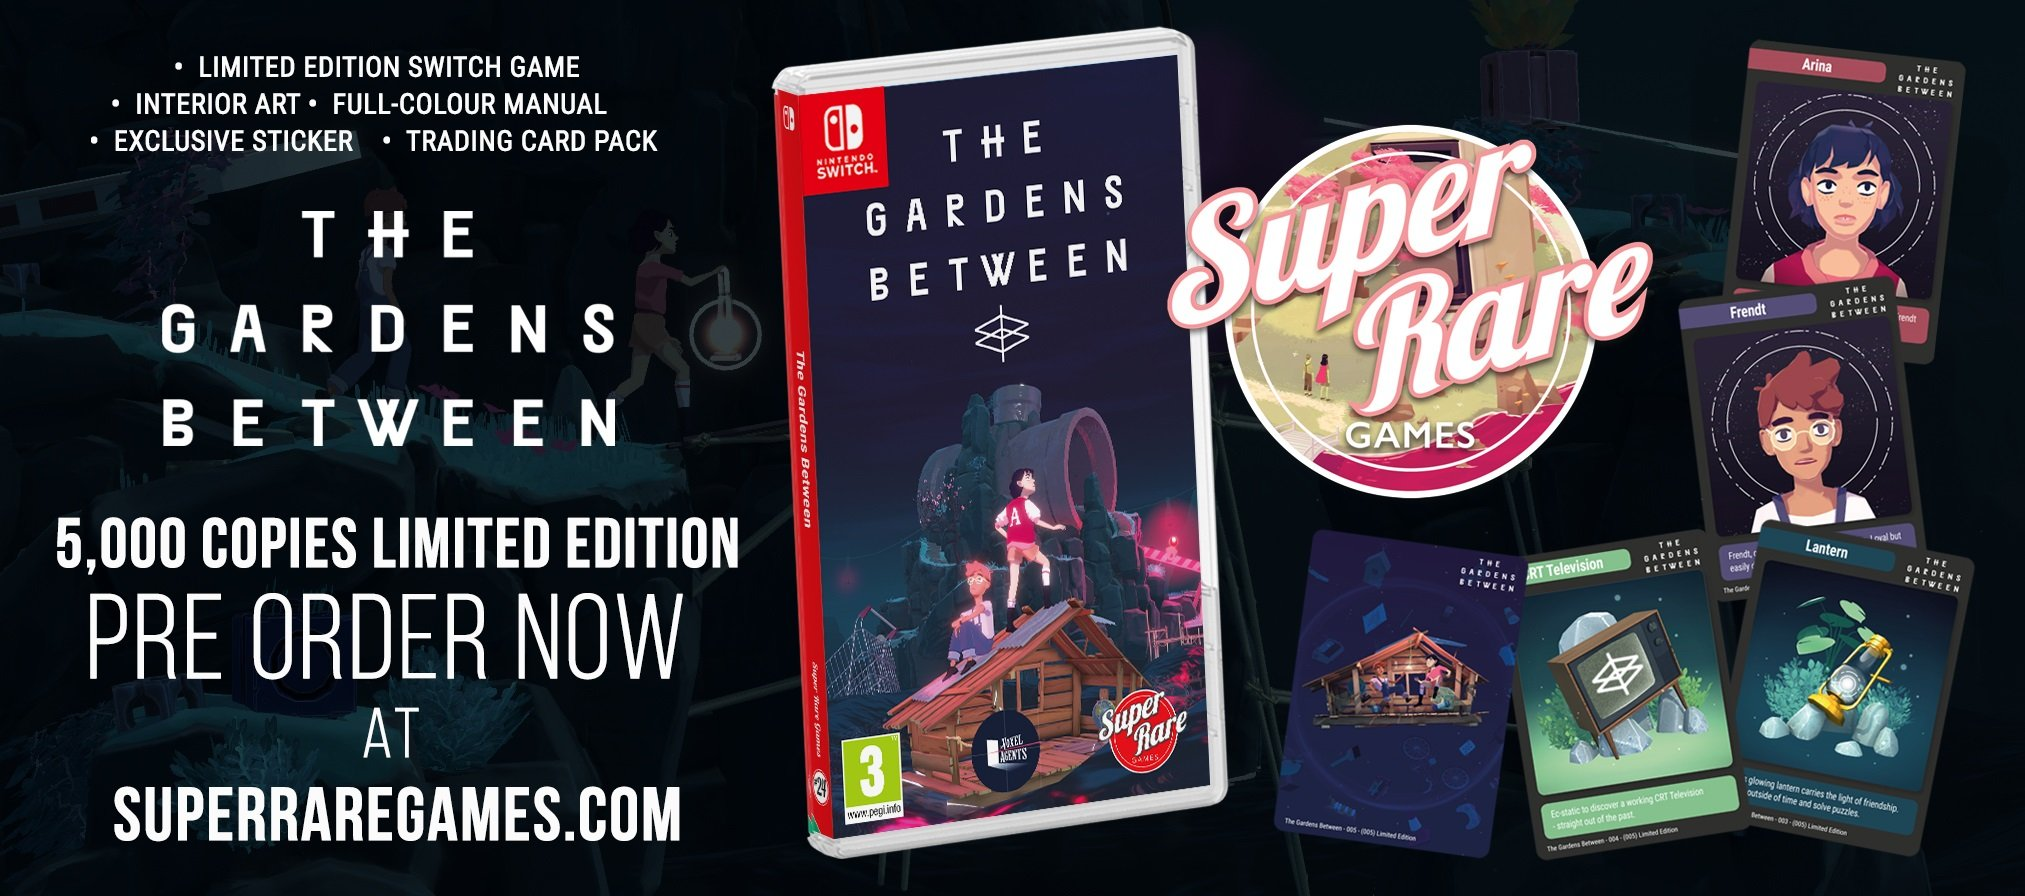 Super Rare Games The Gardens Between contest Switch